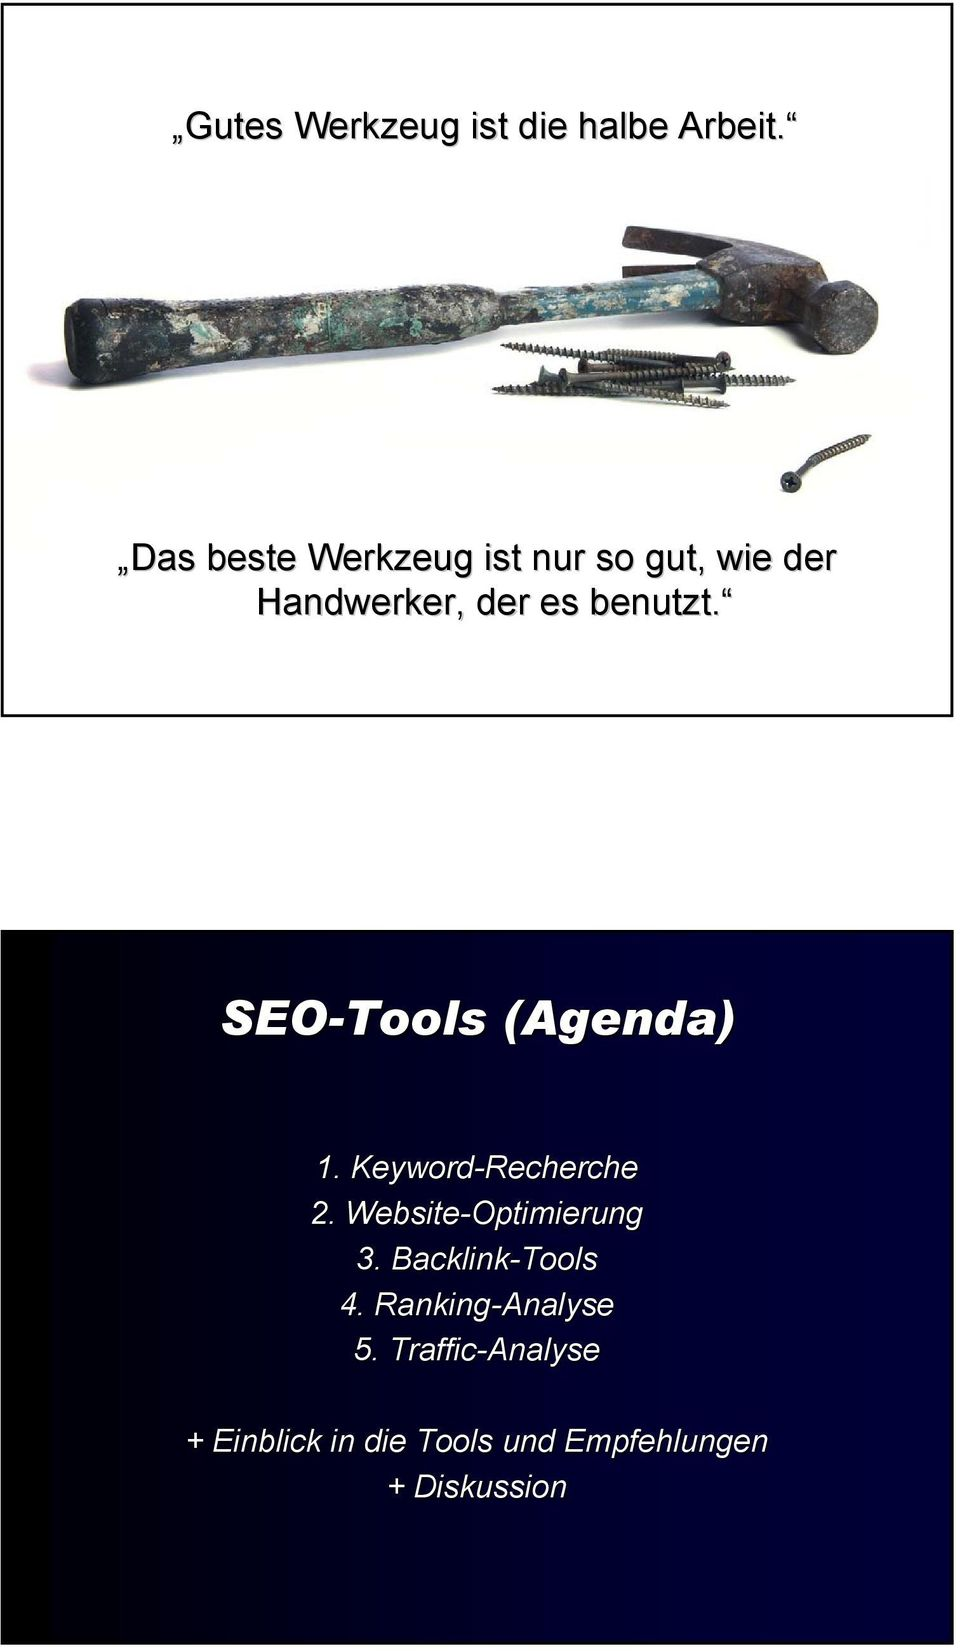 SEO-Tools (Agenda) 1. Keyword-Recherche 2. Website-Optimierung 3.